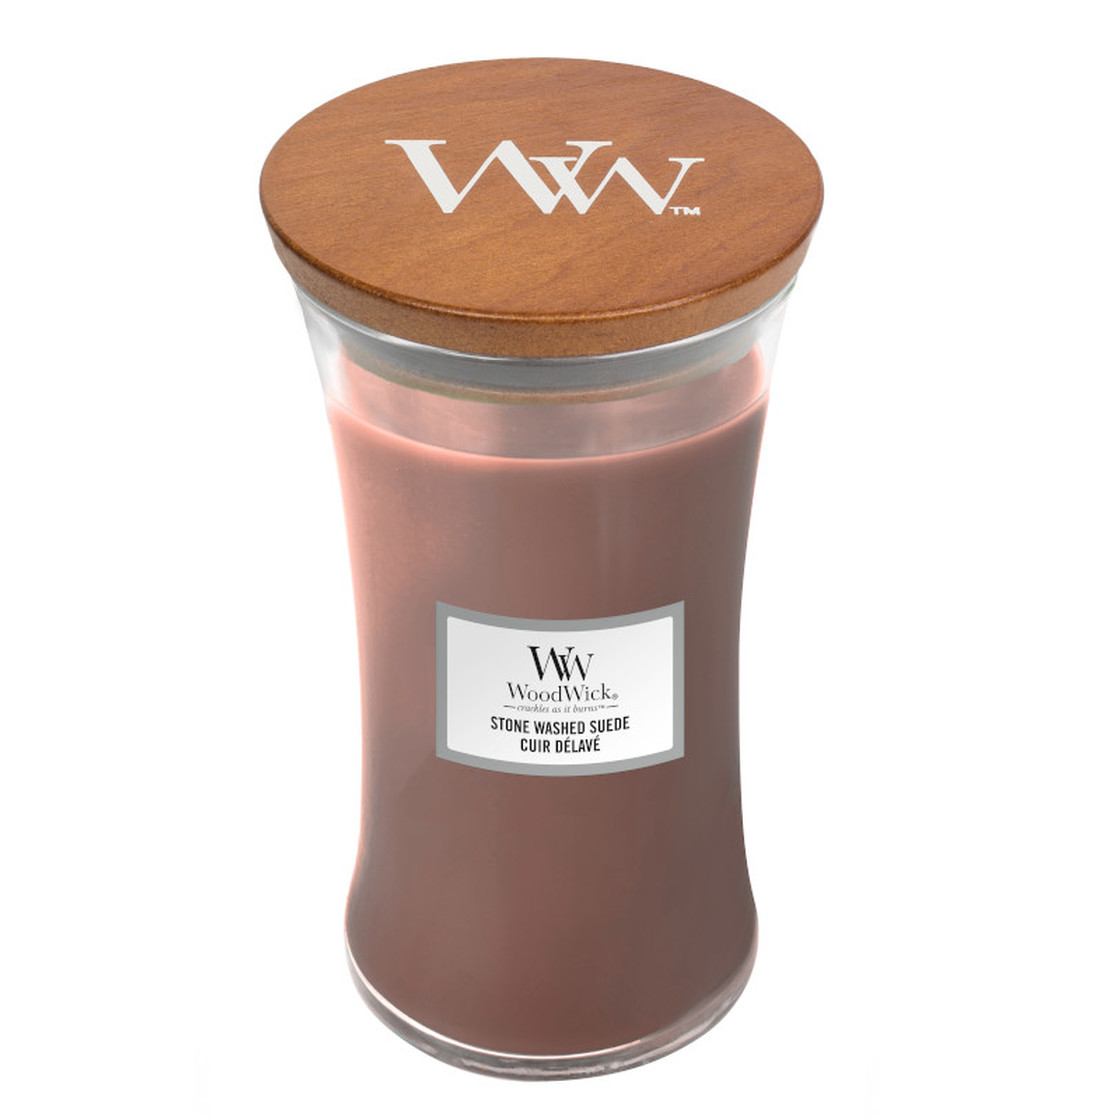 WoodWick Stone Washed Suede 609,5g 1666273E